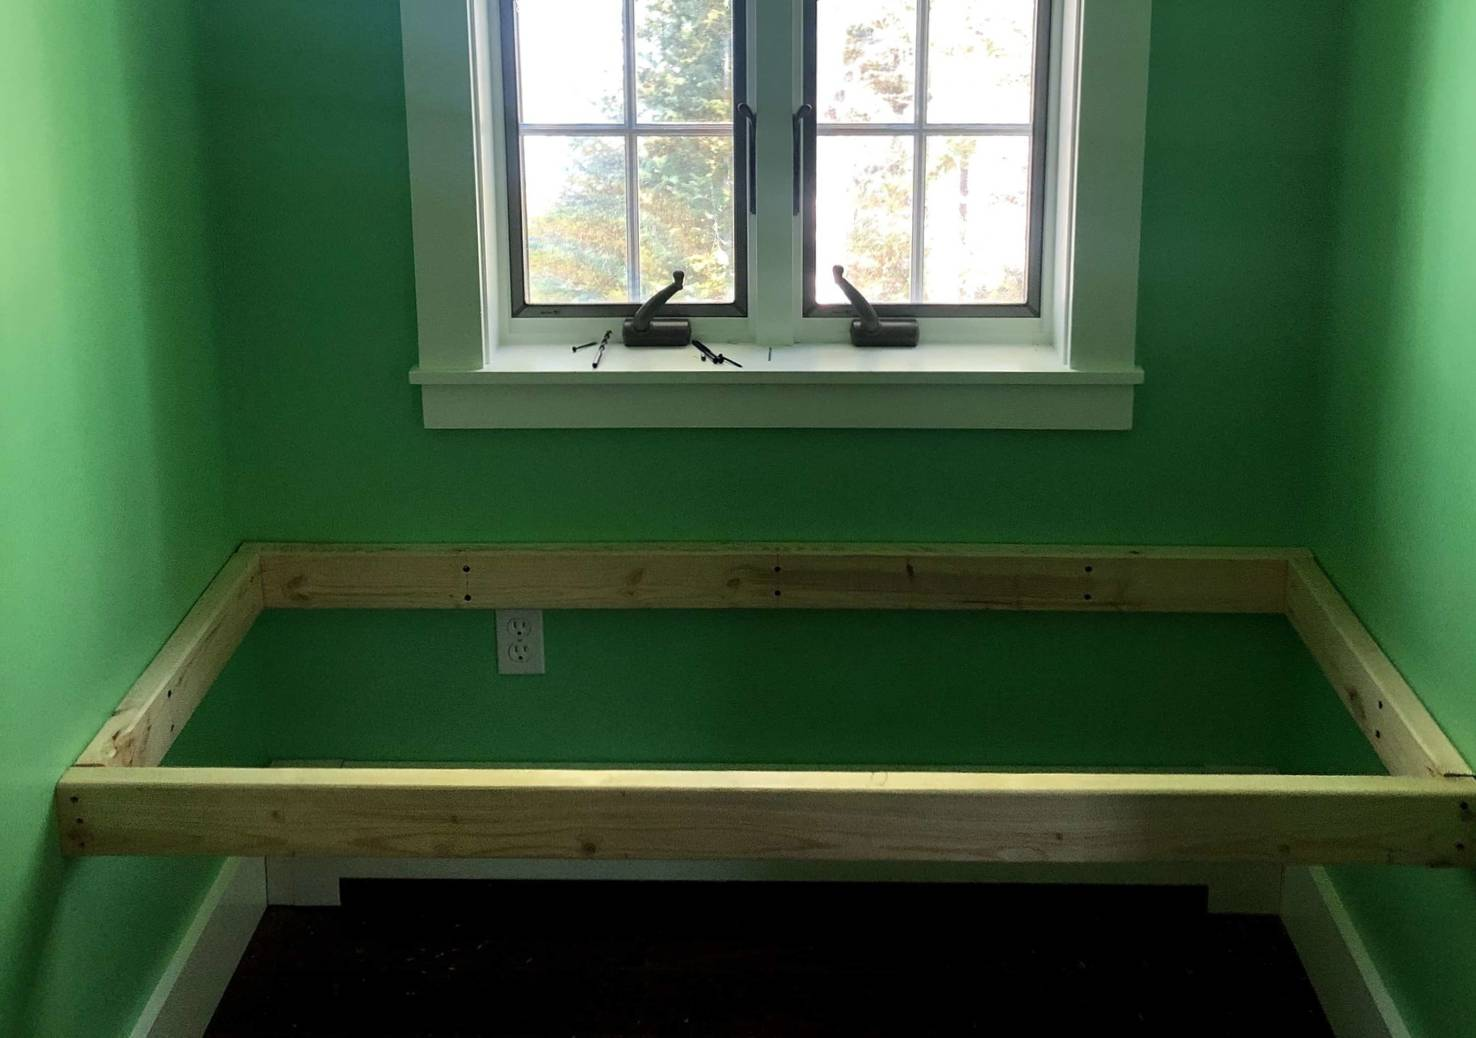 Upgrade Your Home With A Cozy Window Seat Popular Science